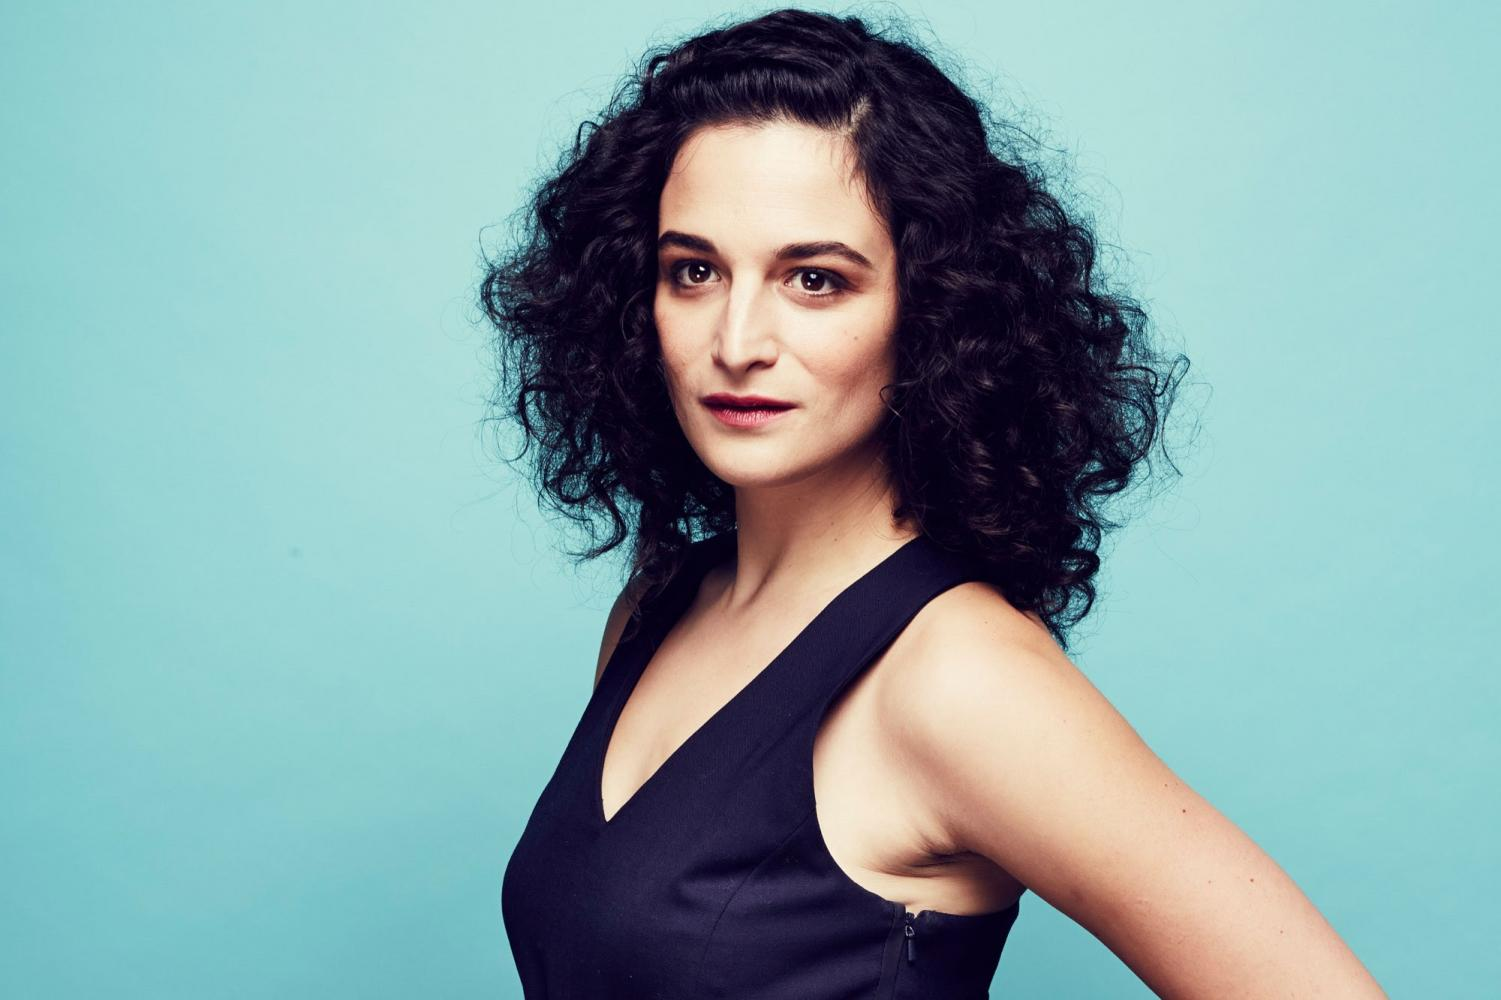 Jenny Slate. Slate — an actress, writer and stand-up comedian — will speak Thursday at an event hosted by A&O Productions and College Democrats.